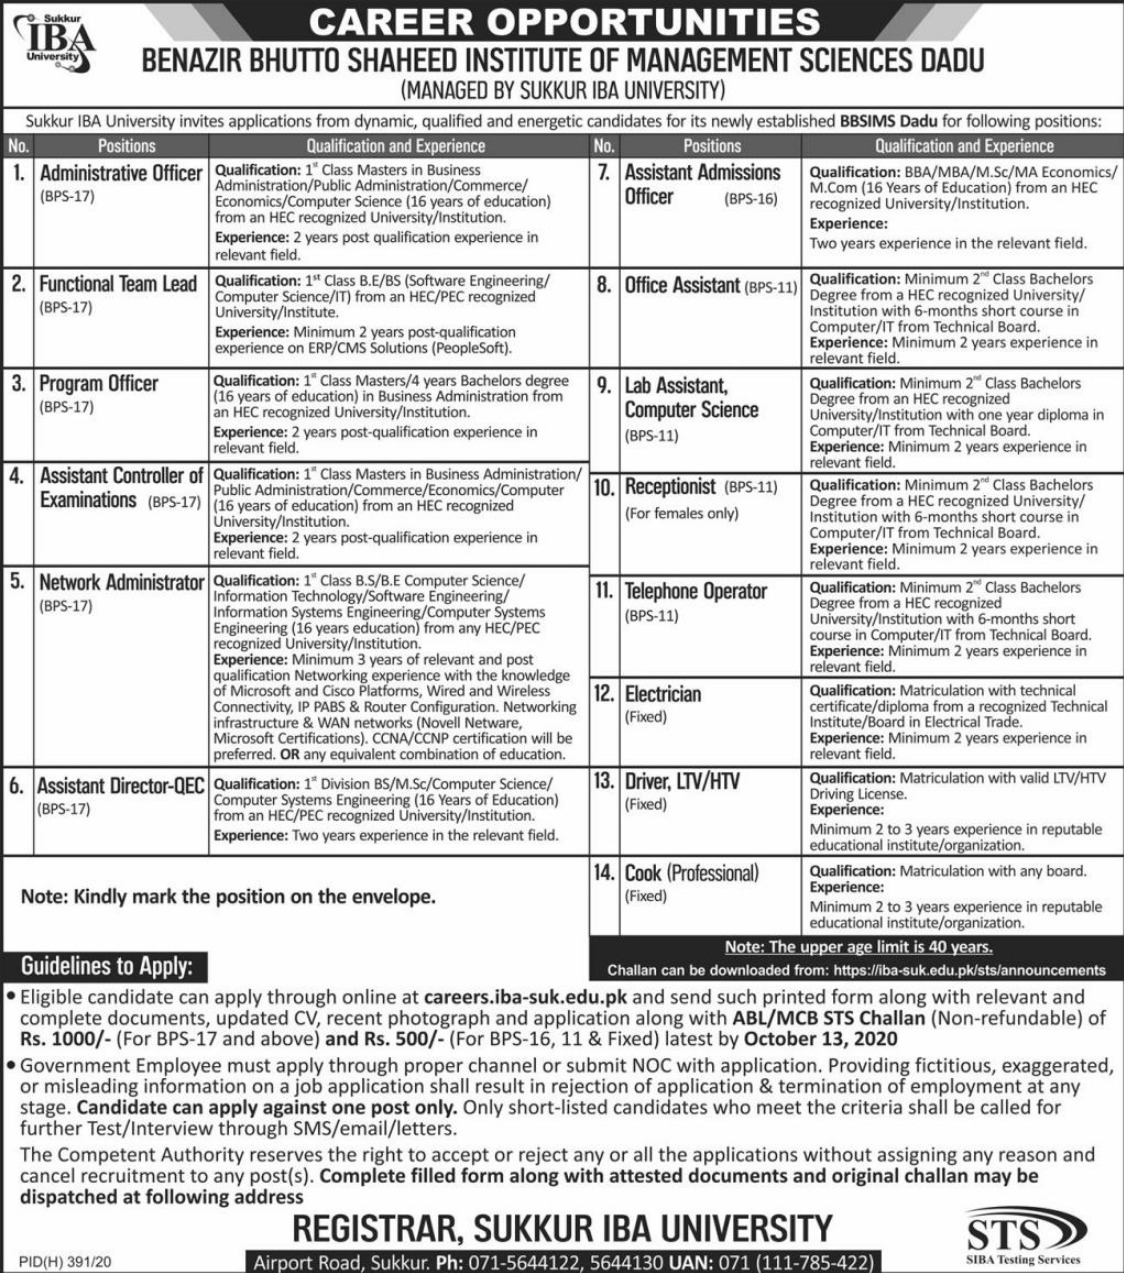 Sukkur IBA University BBSIMS Dadu Sindh Jobs September 2020